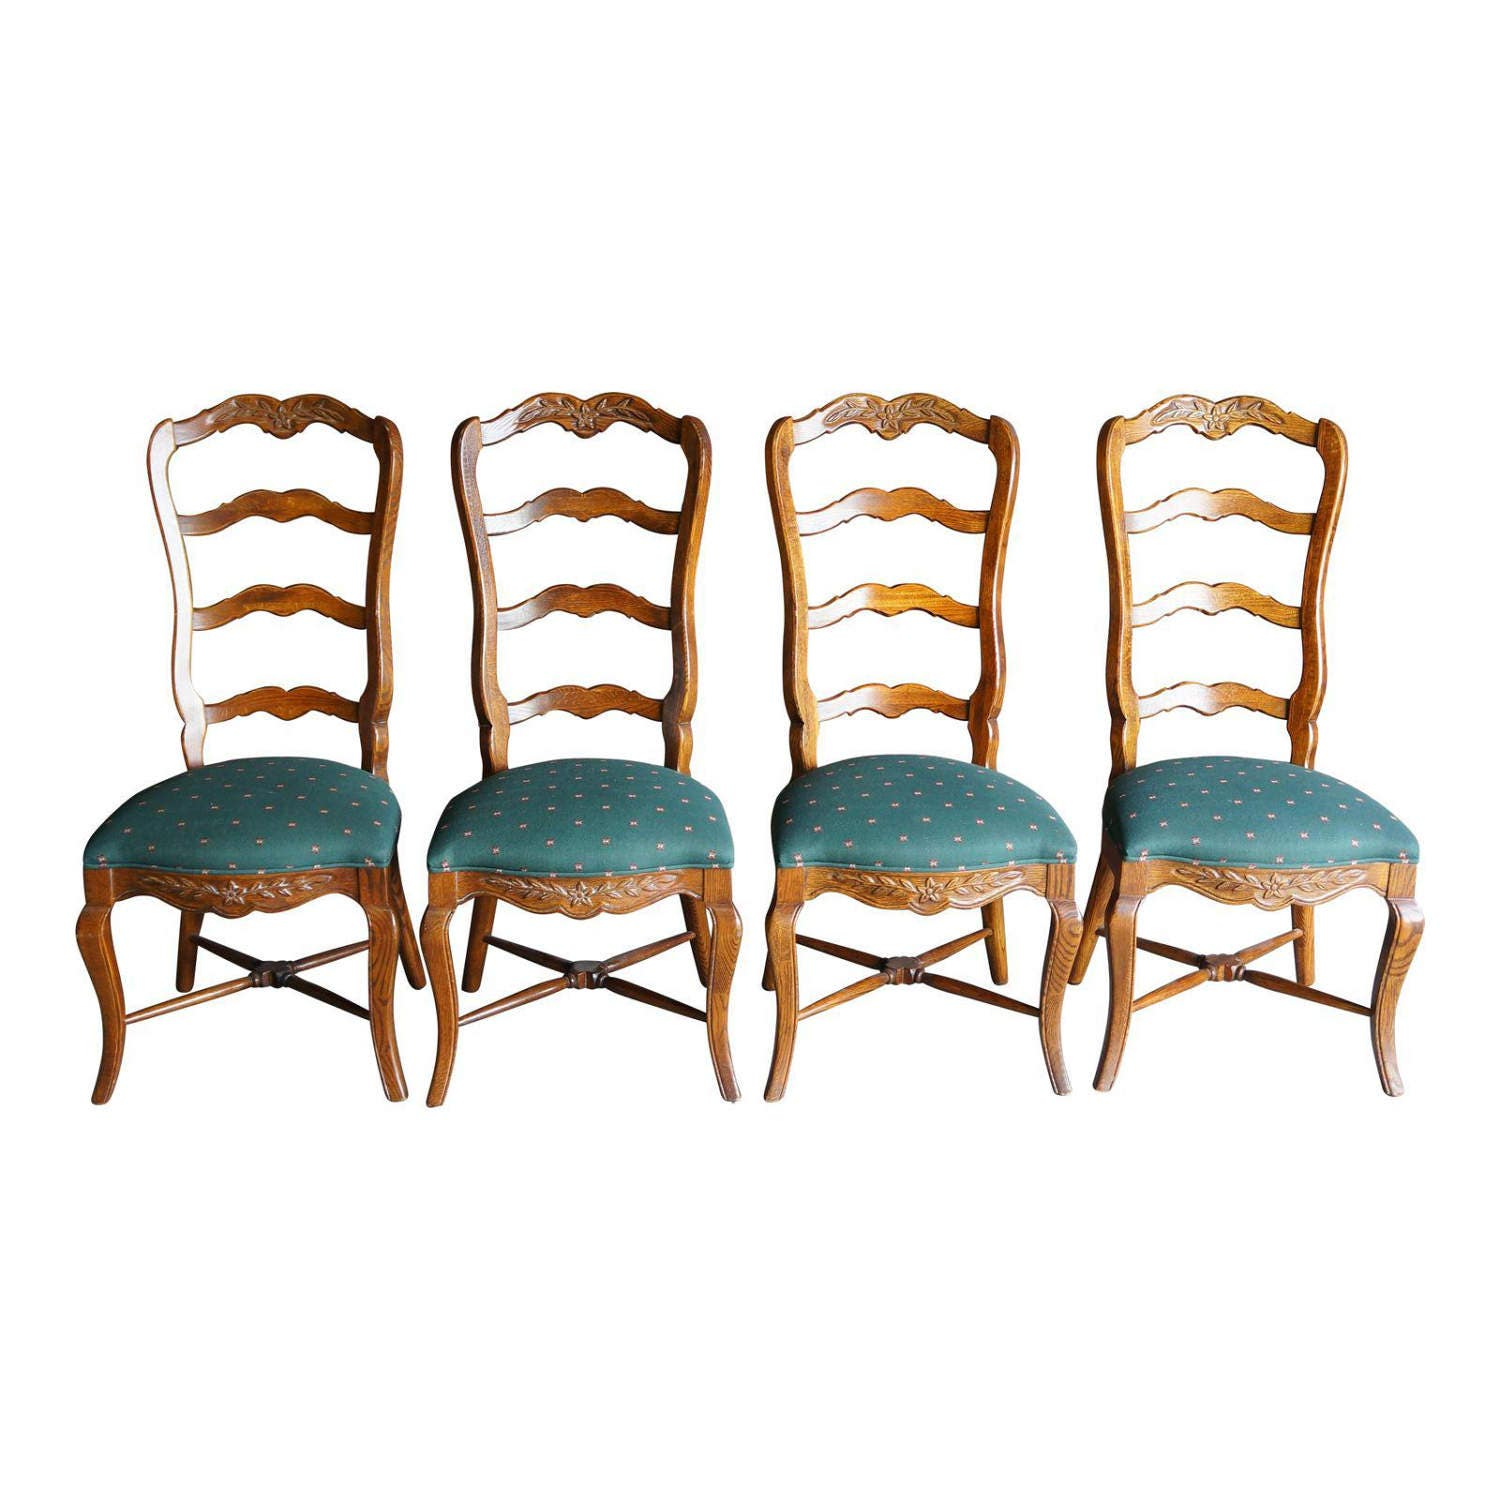 Country French Ladder Back Dining Chairs / Pierre Deux Style